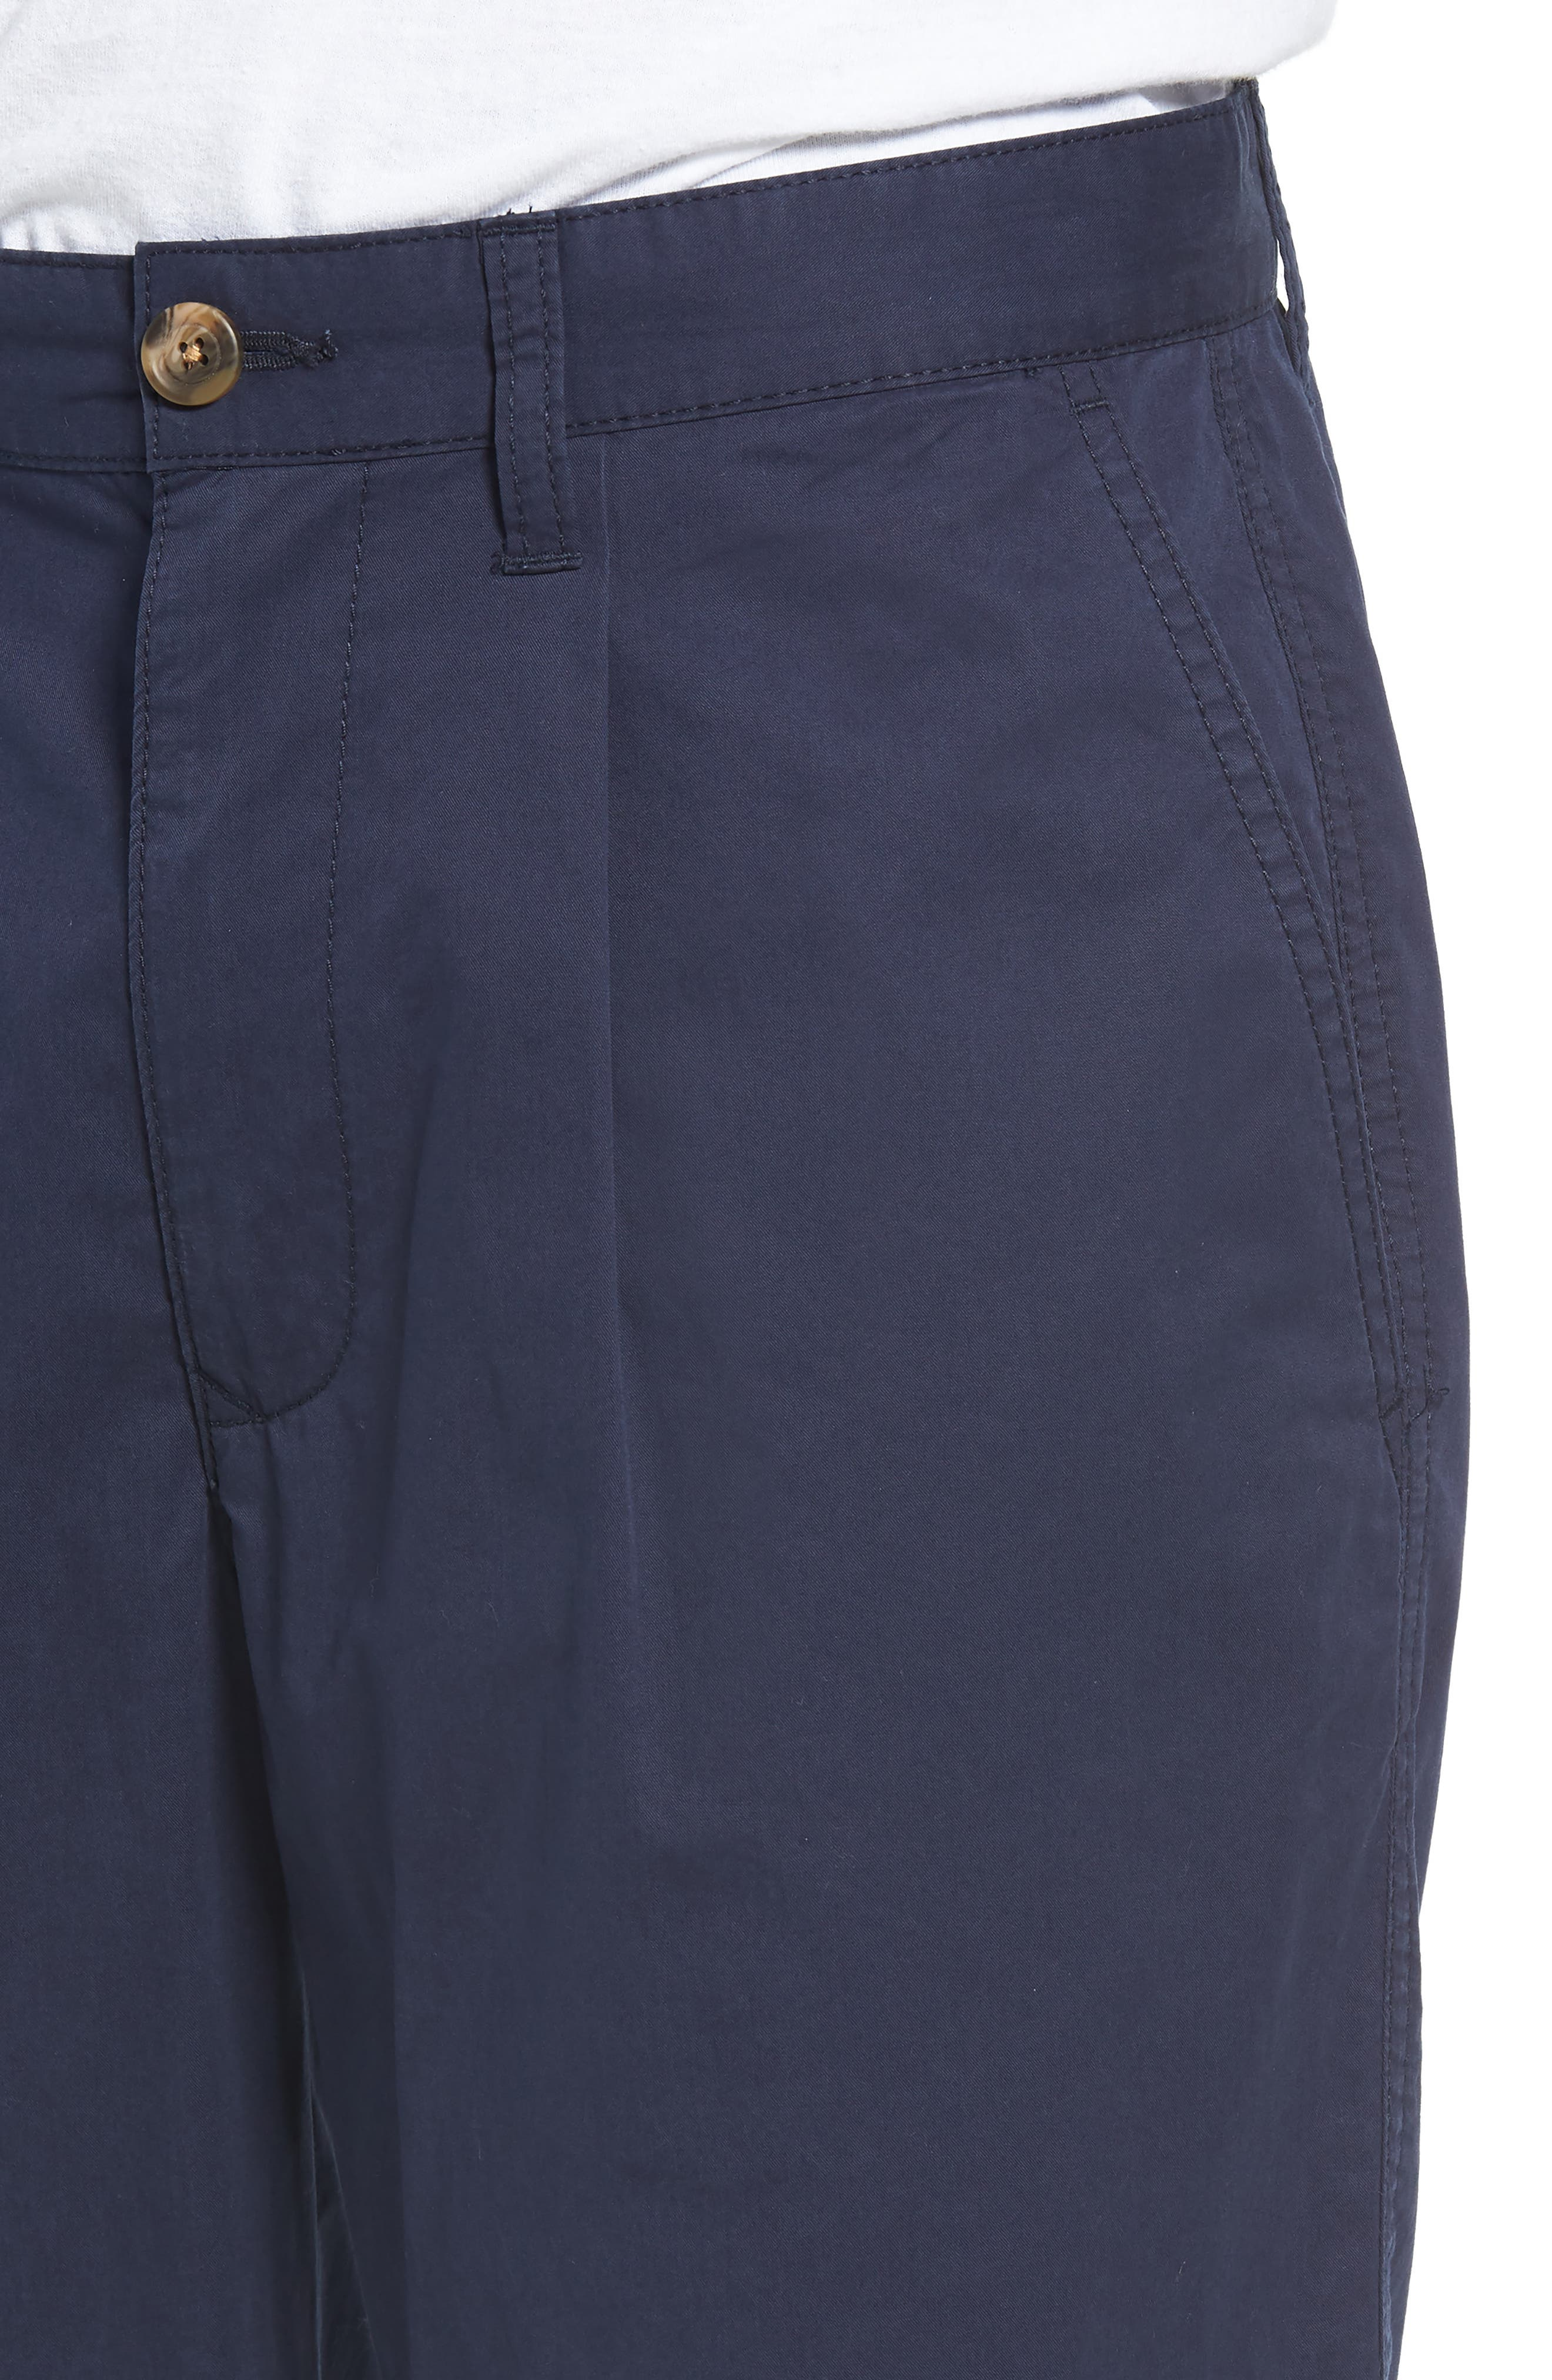 Pleated Chino Shorts,                             Alternate thumbnail 4, color,                             410